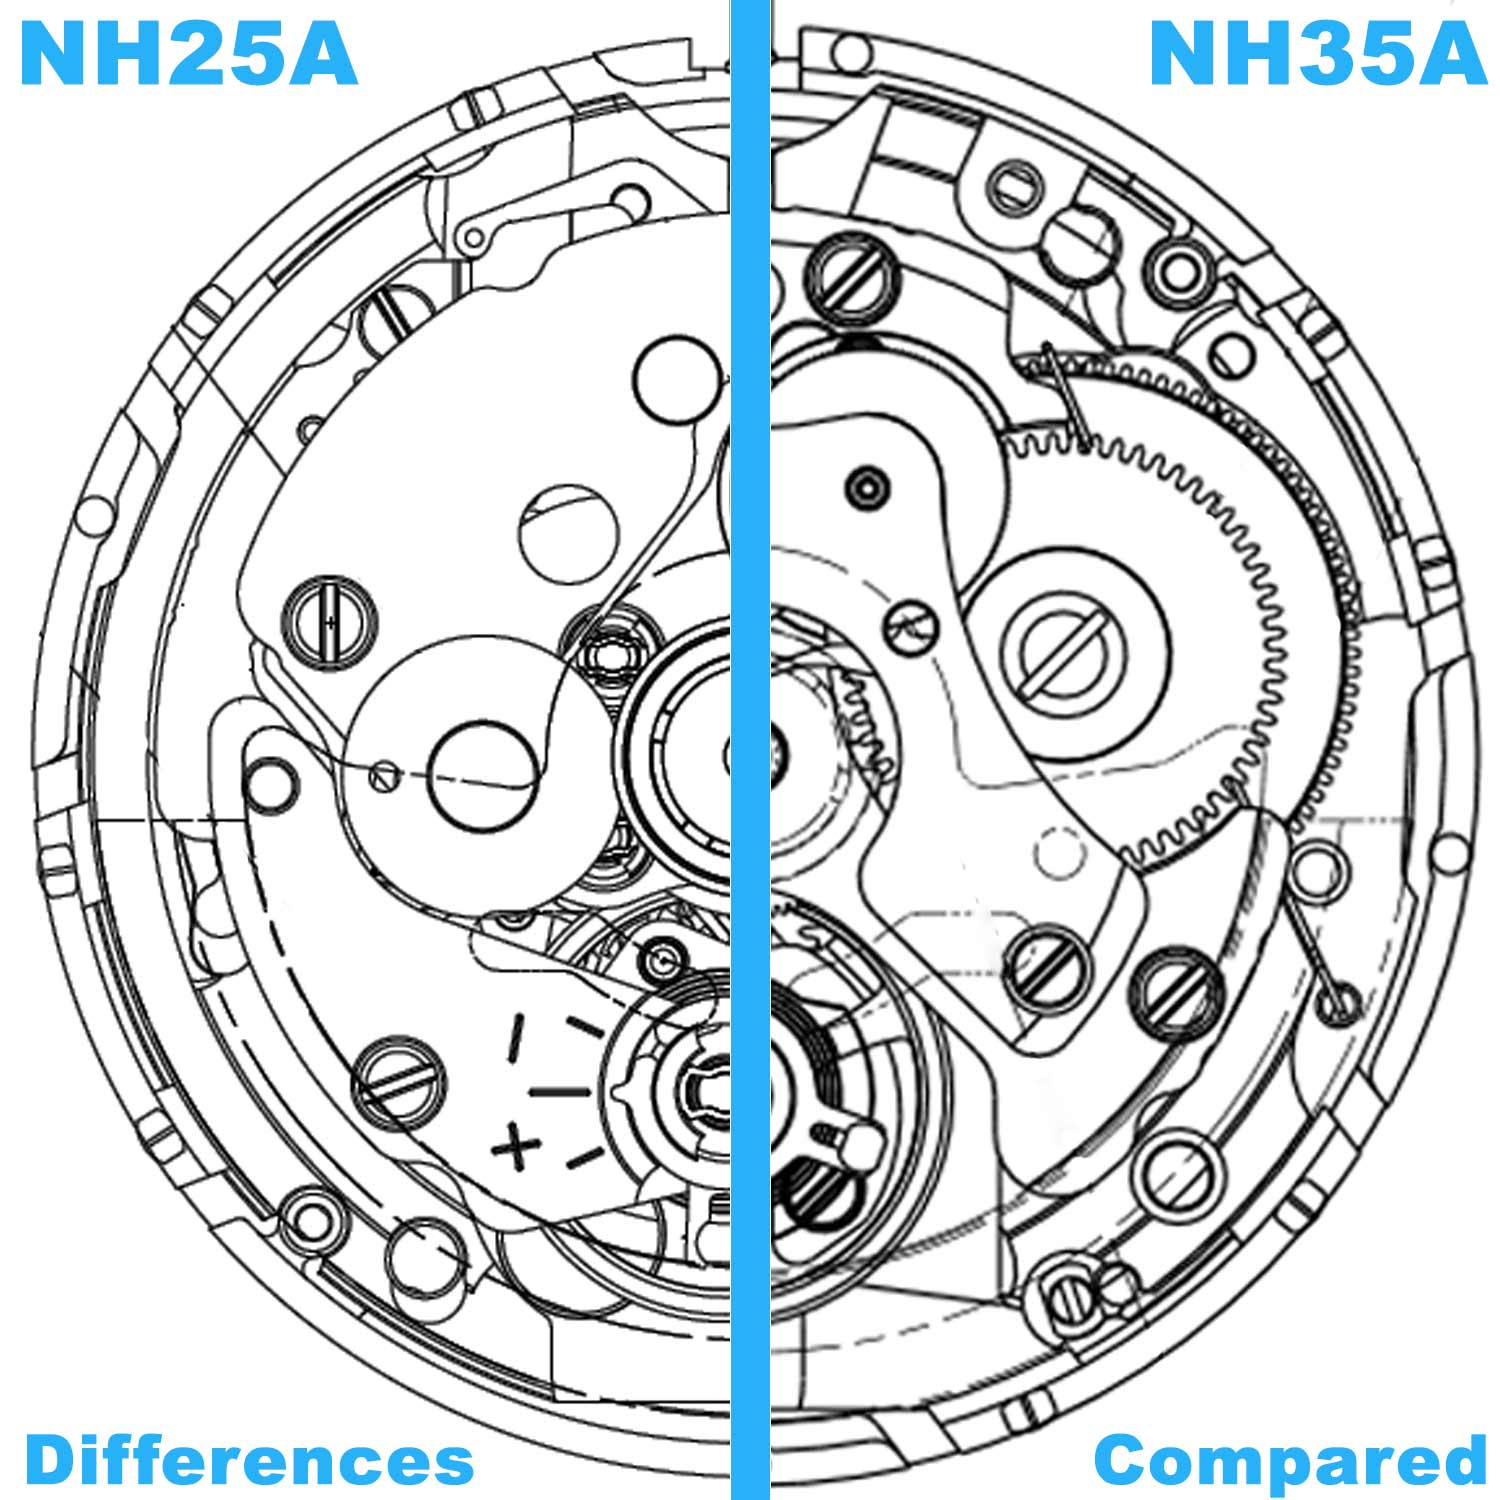 Seiko SII TMI NH25A vs NH35A Differences Compared